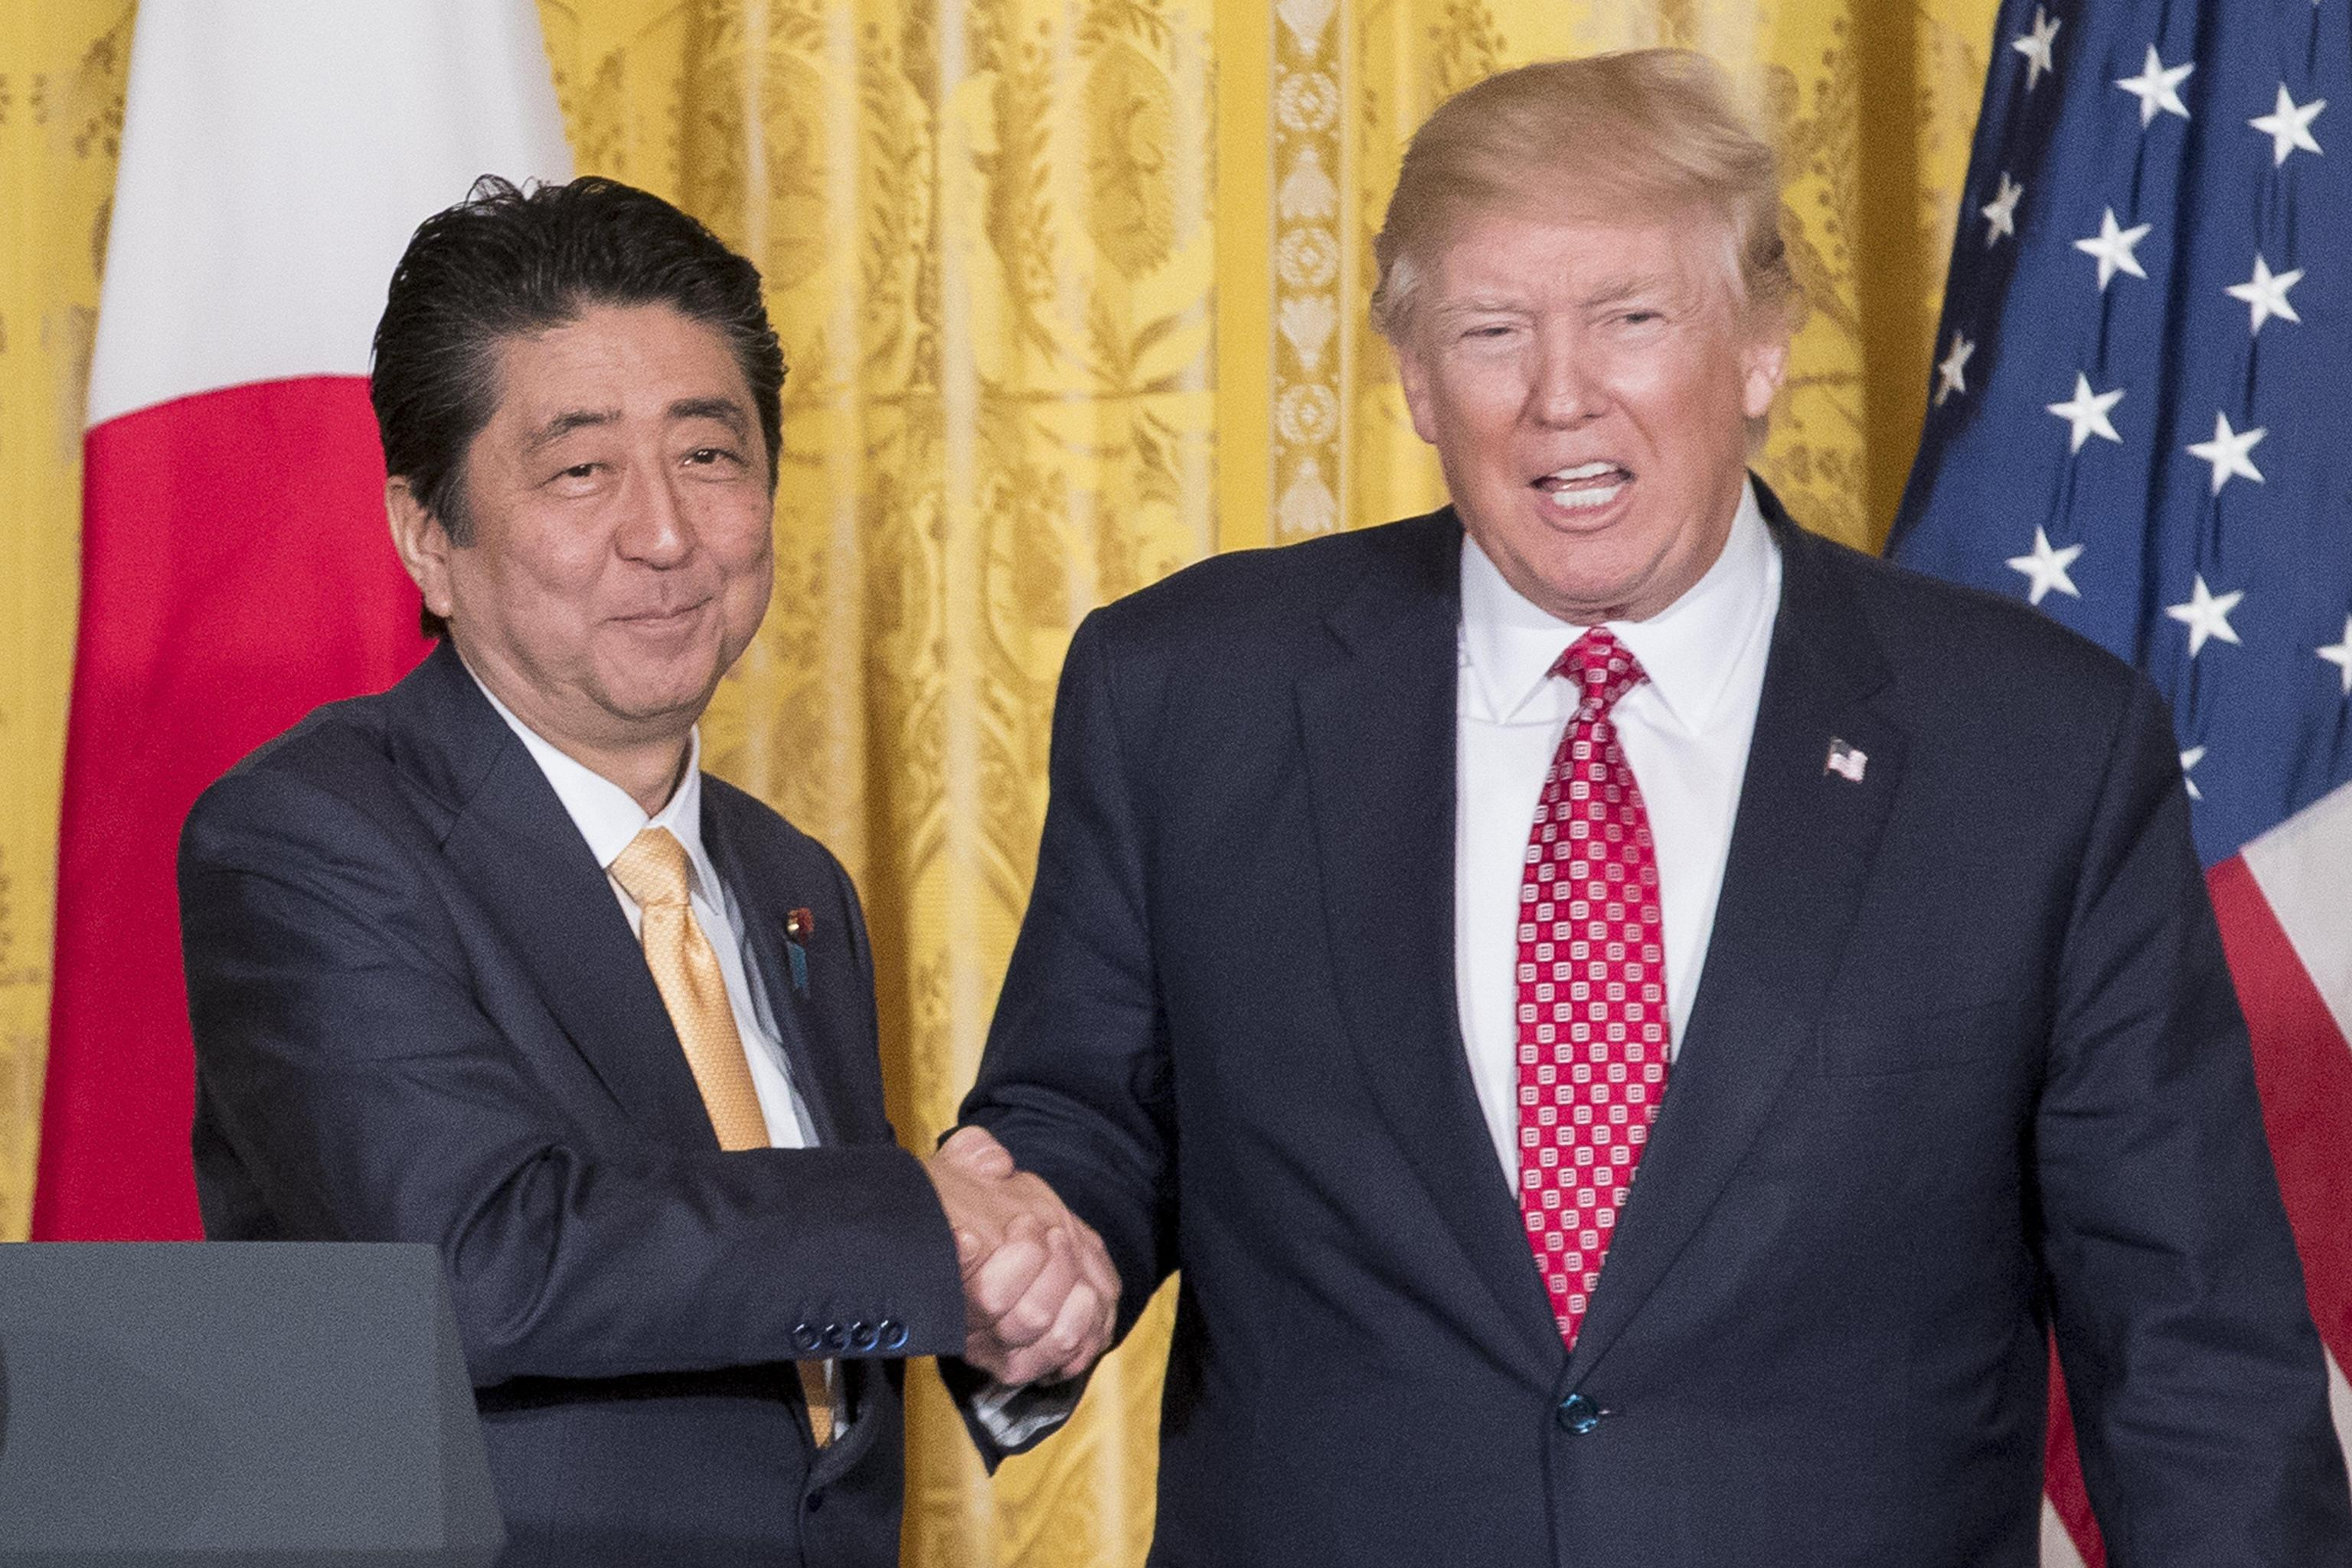 President Trump and Prime Minister Abe Hold Press Conference at White House